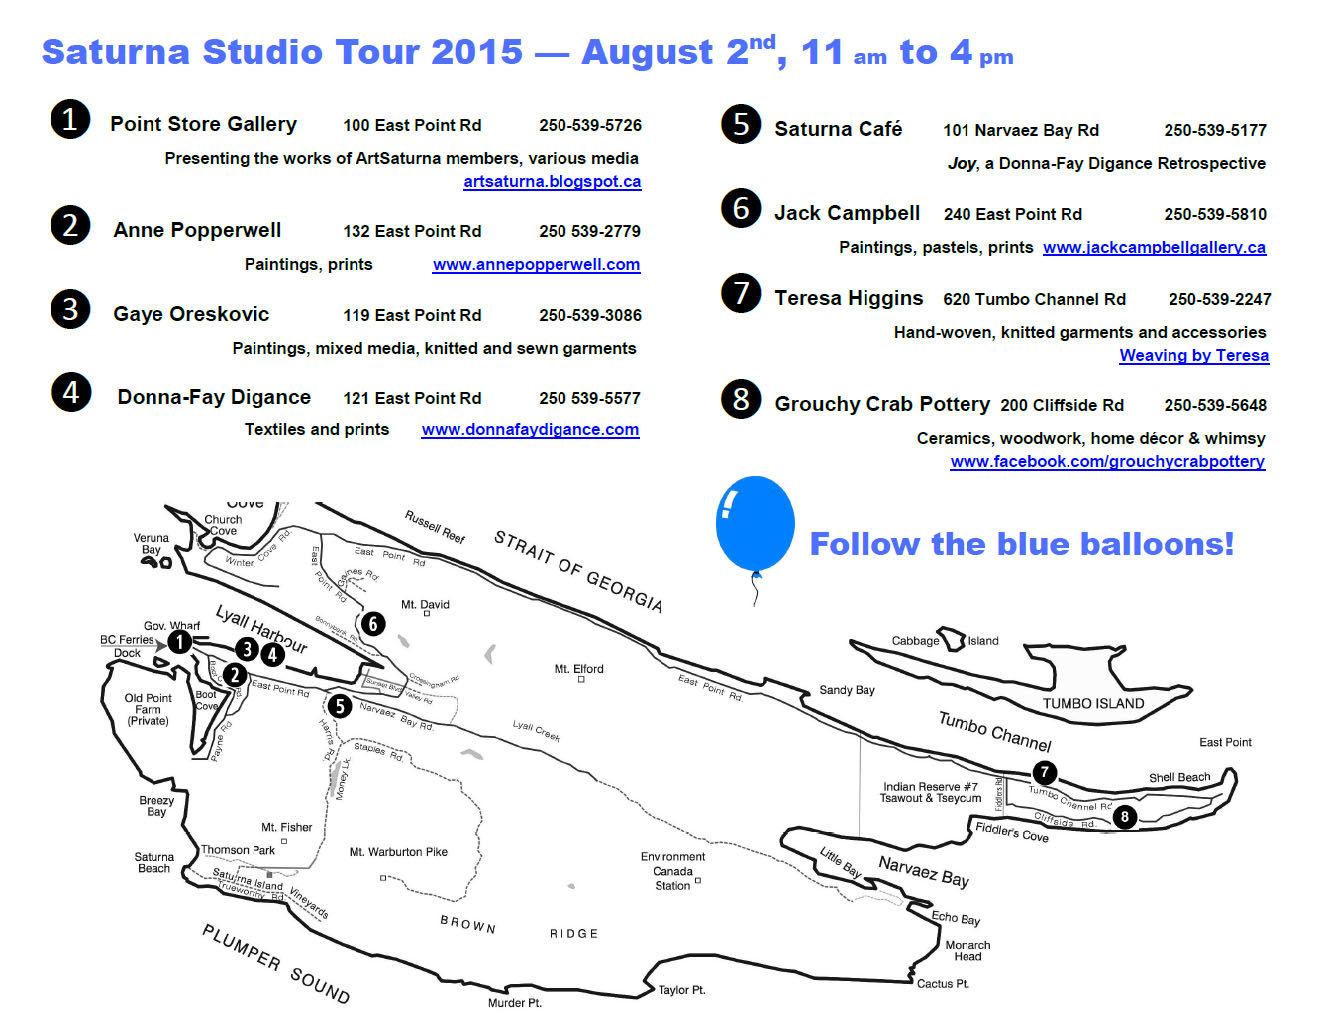 Saturna Studio Tour 2015 Map with participating artists locations and websites.